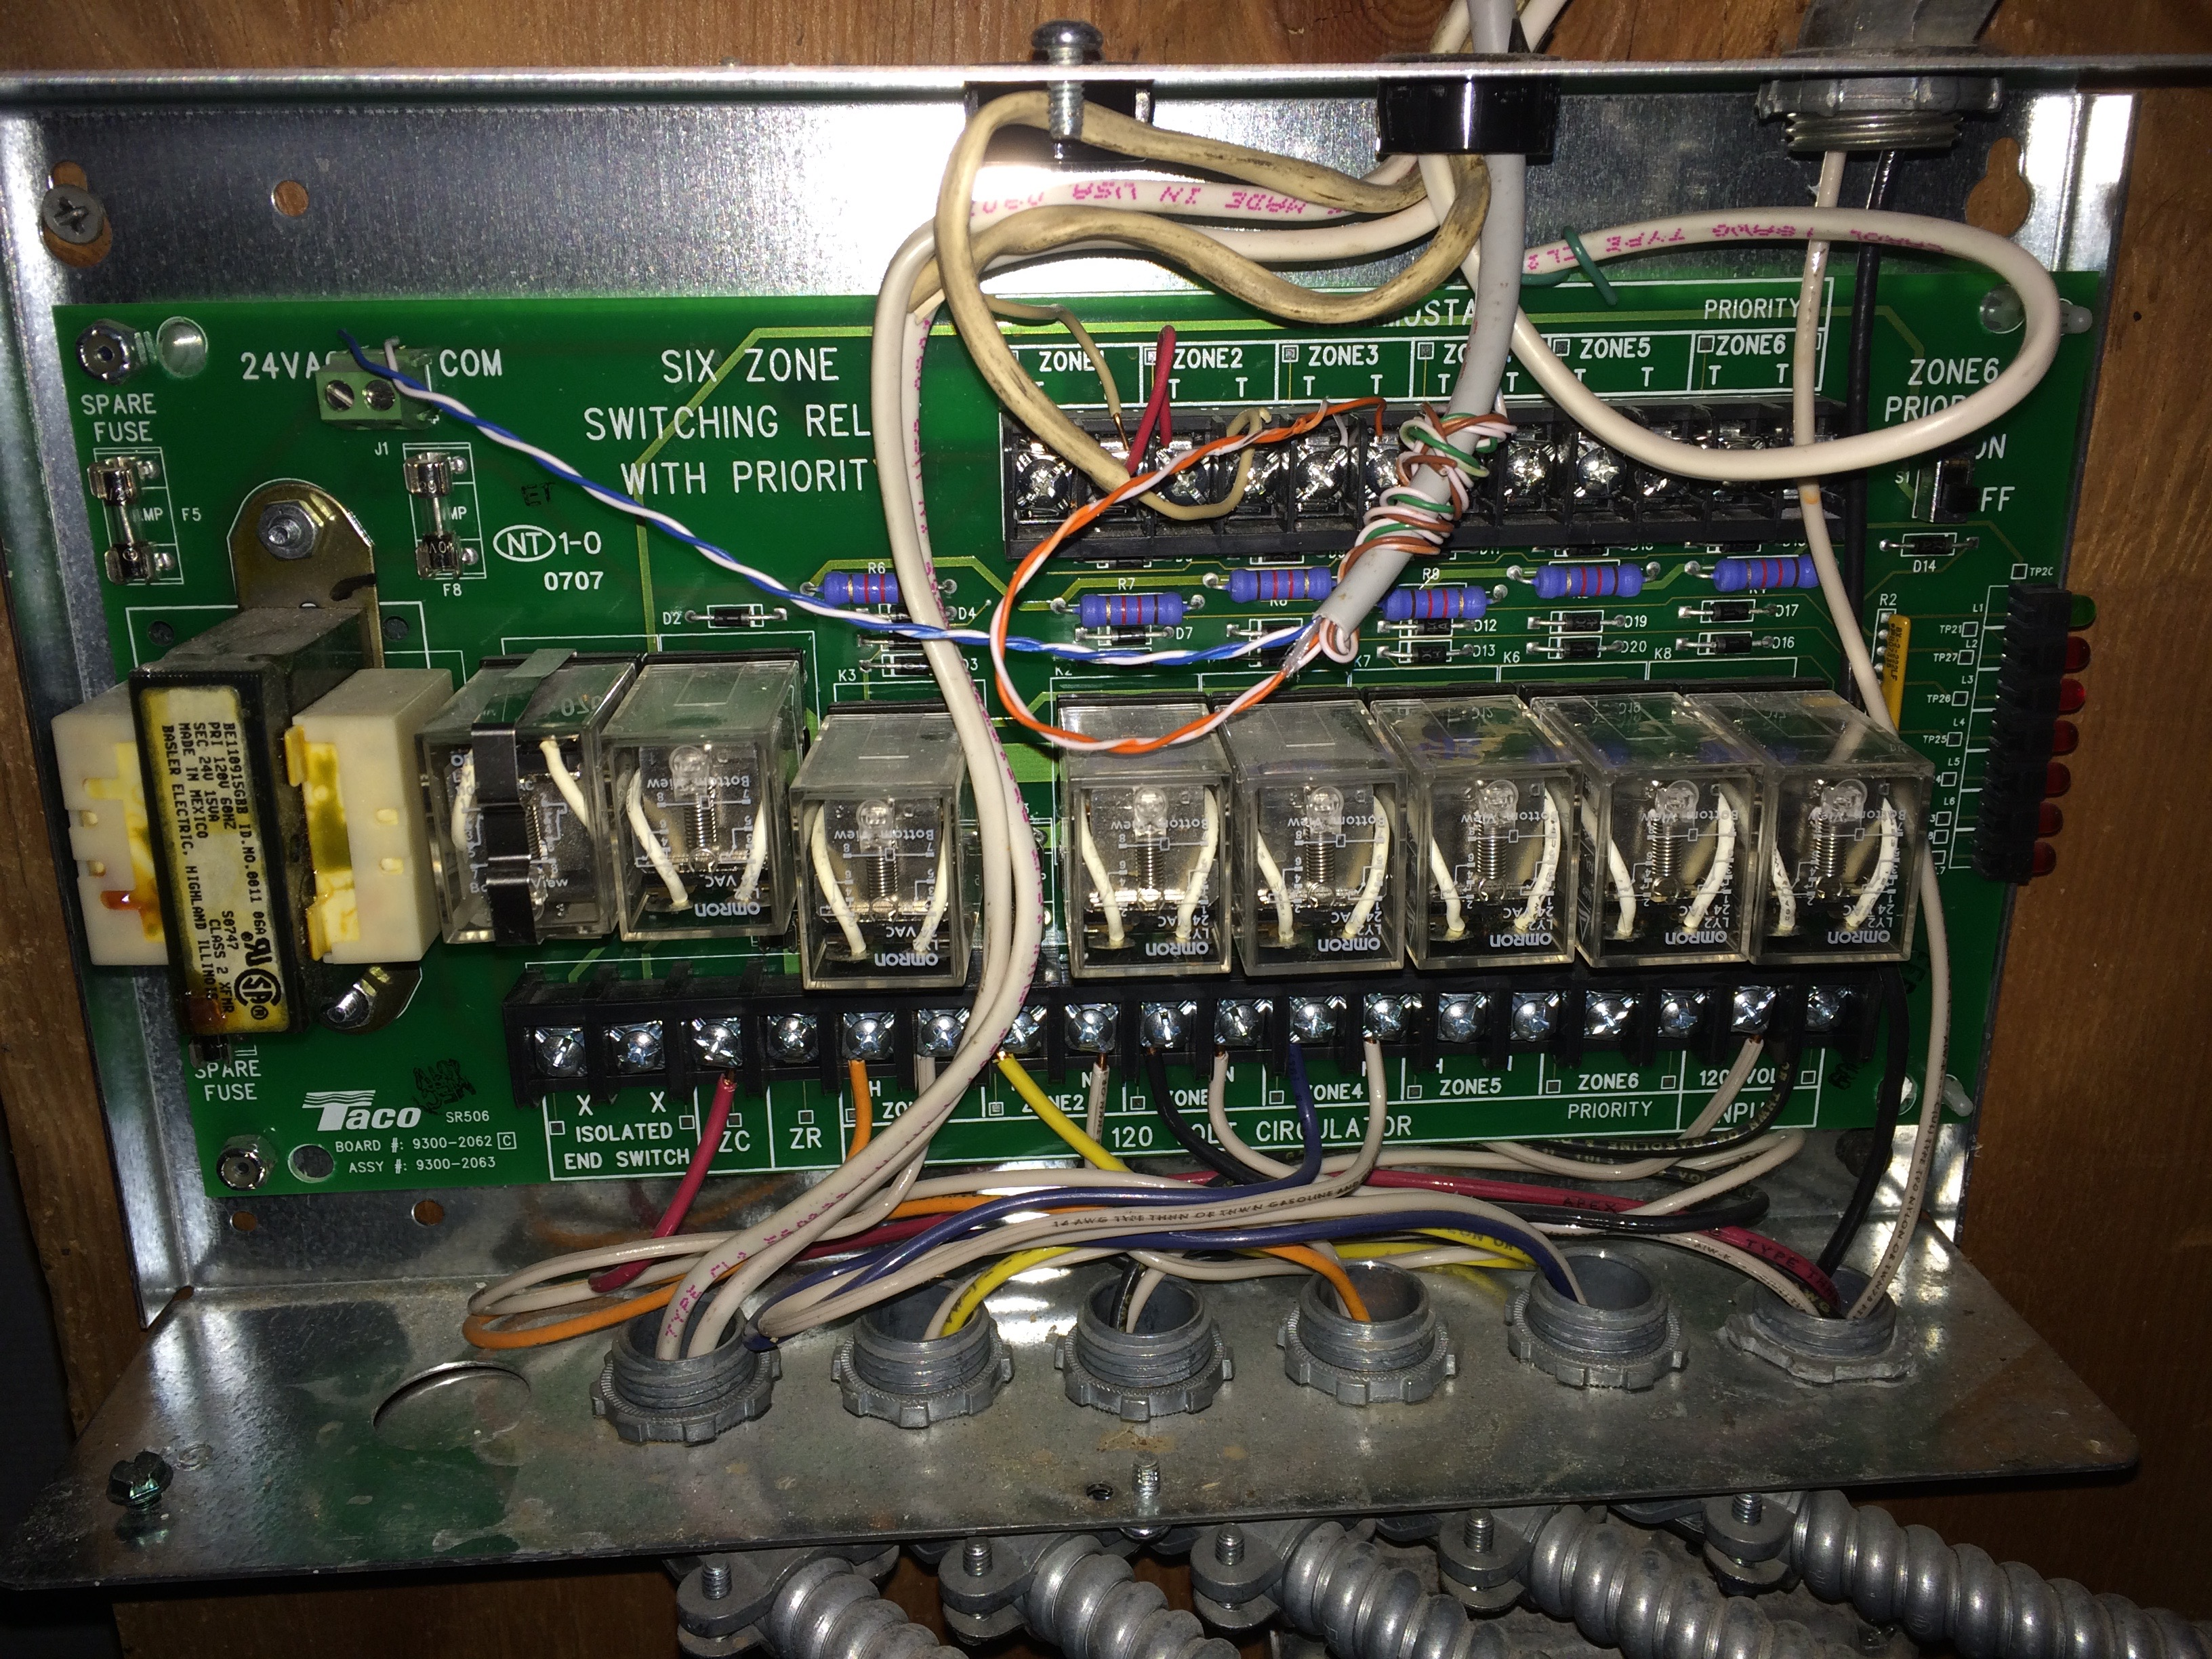 I Am Adding A Wireless Thermostat To New Zone Have Added The Taco Zvc404 Wiring Img 0683img 0683 0682